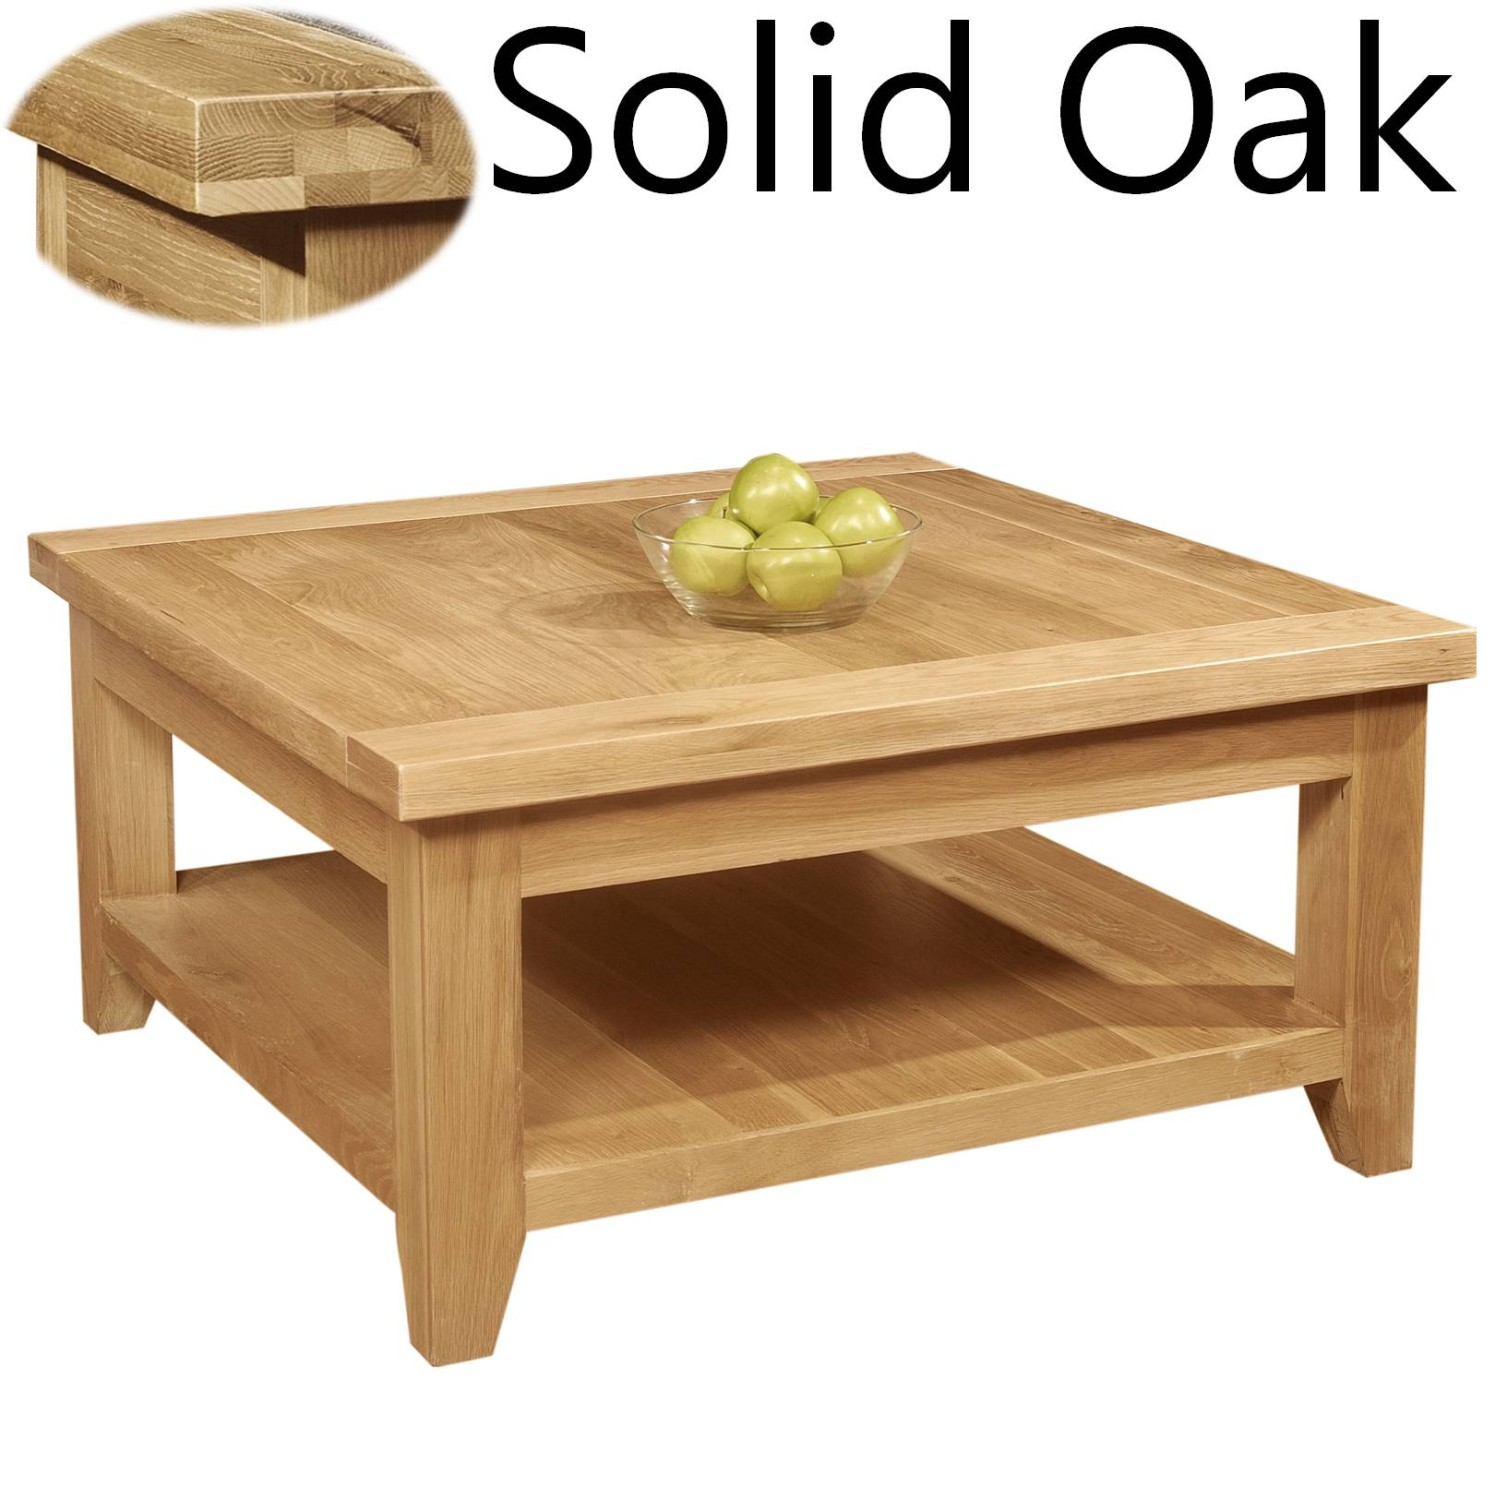 Panama solid oak living room furniture square coffee table for Solid oak furniture